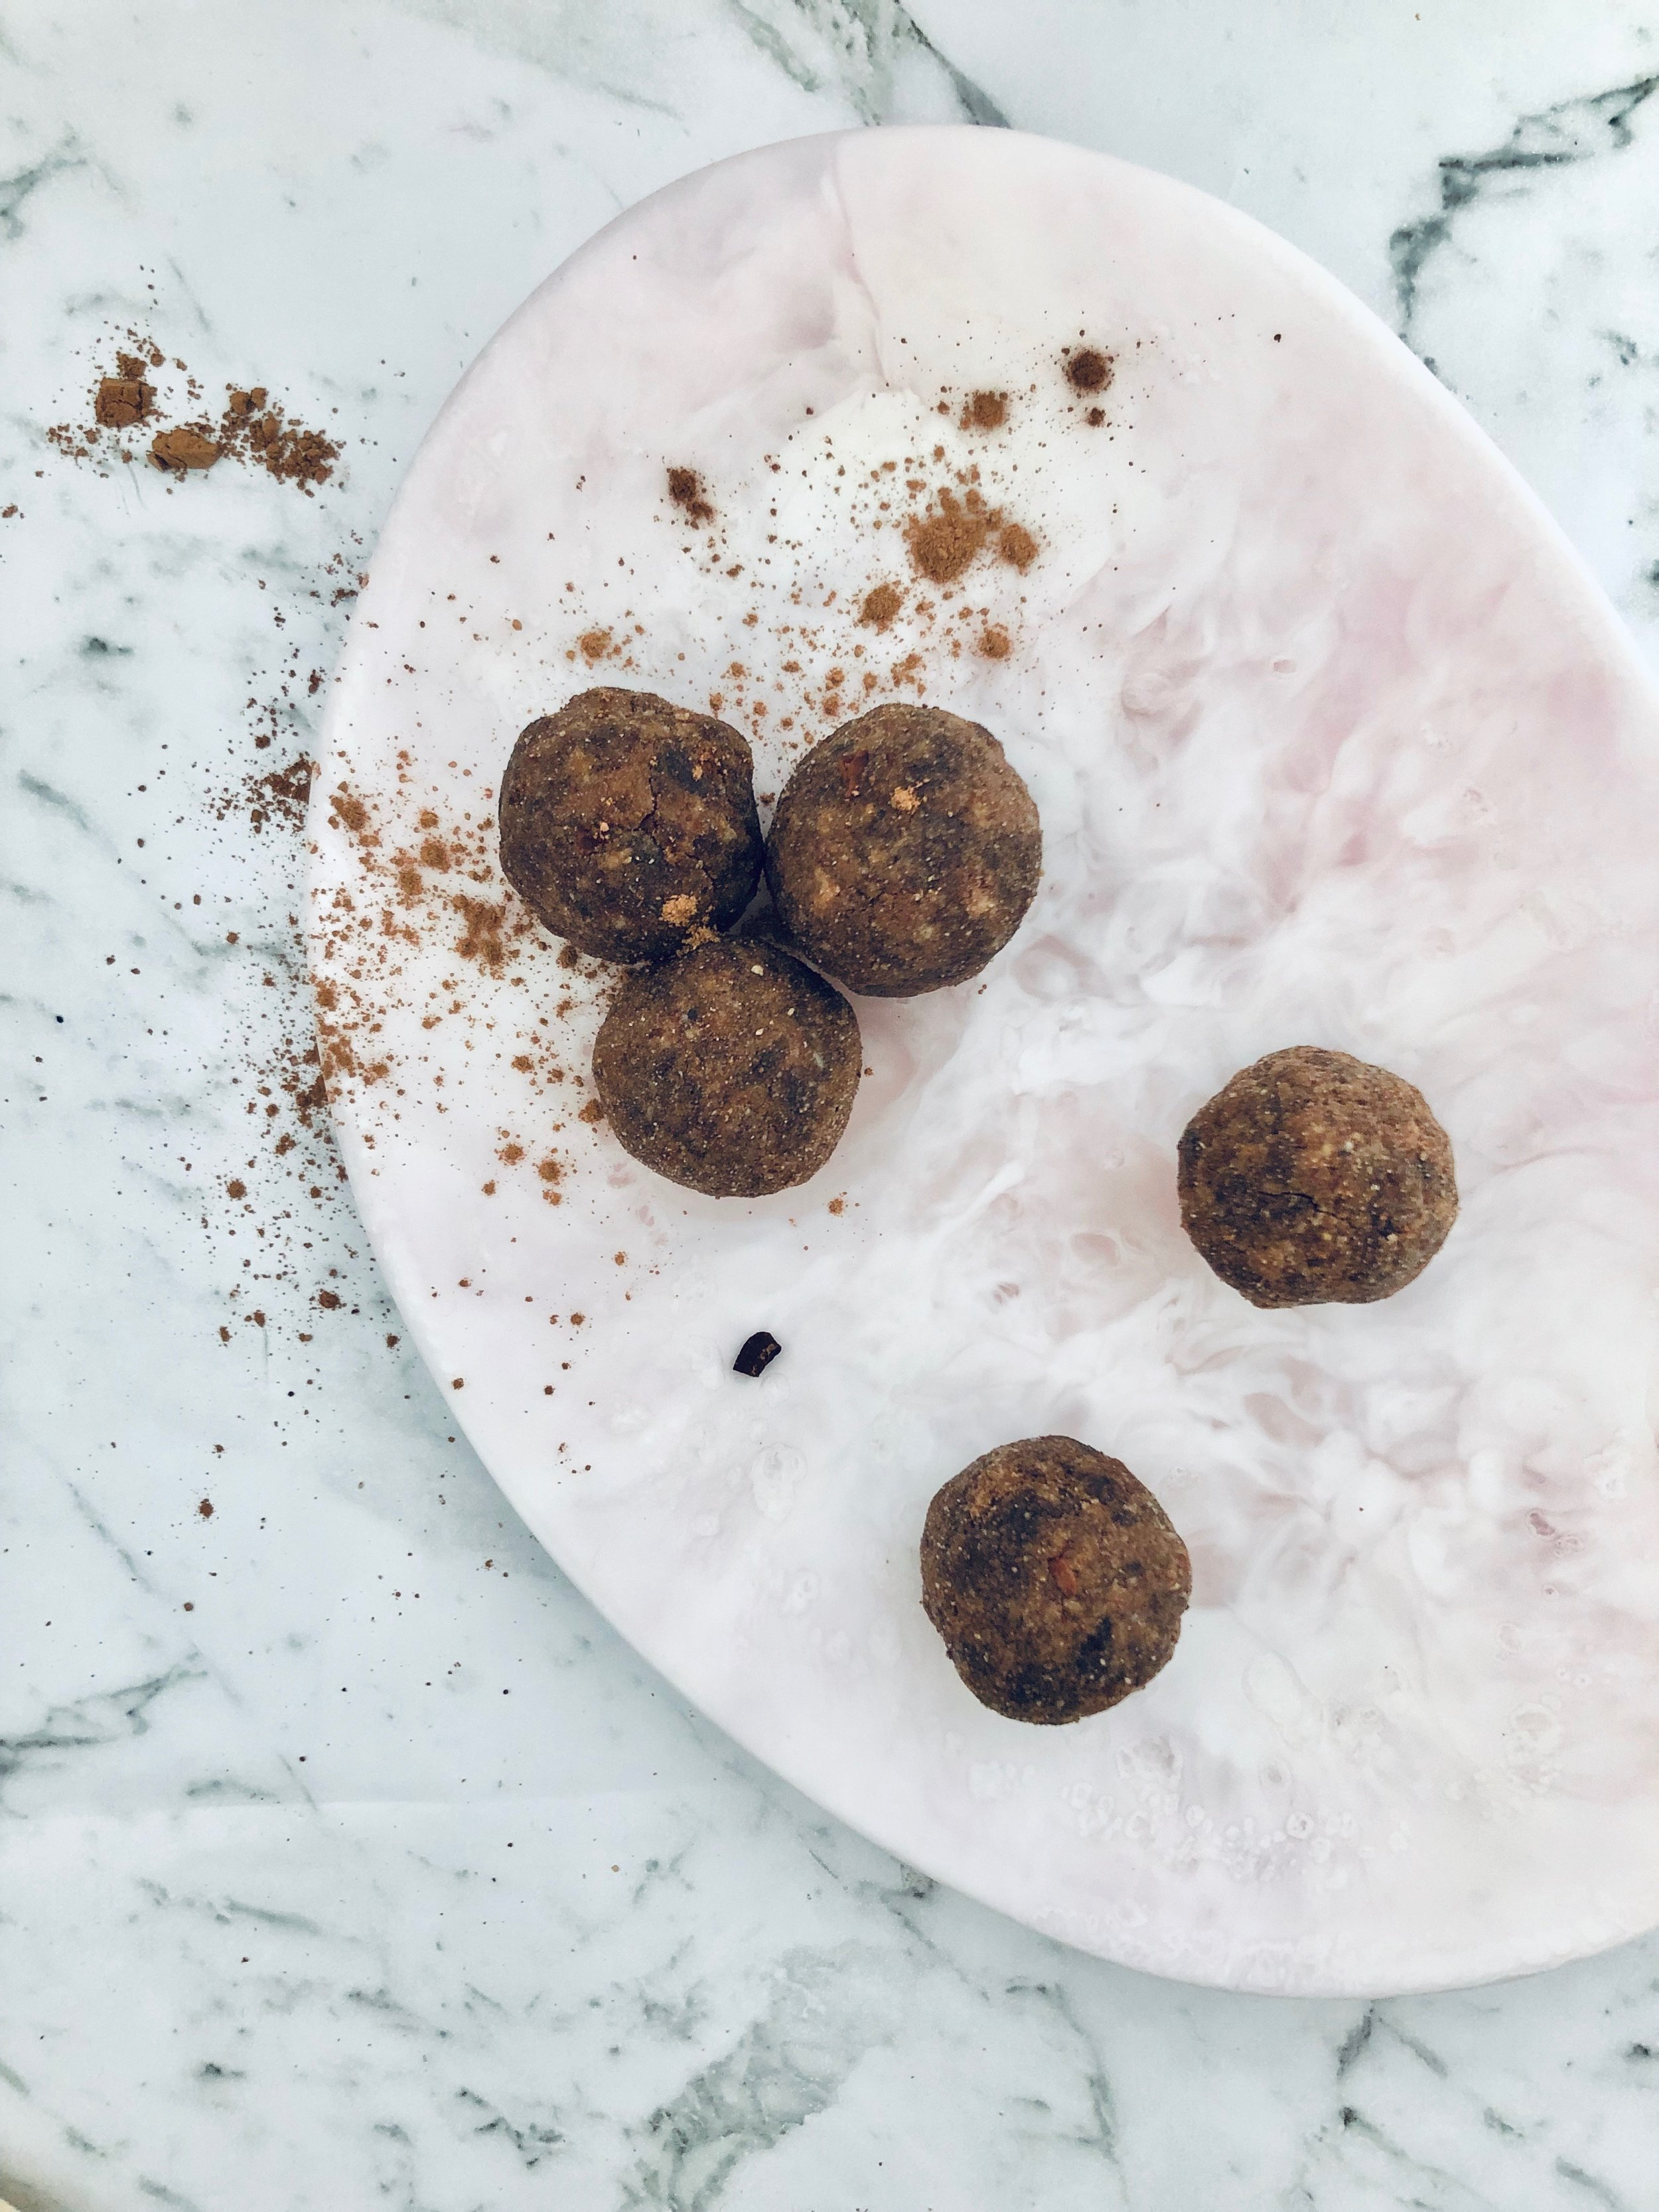 - You know that feeling around mid afternoon when the hunger pains are REAL!!! Well my Clean Fudge Brownie Bliss Balls are a delicious, balanced snack to reach for!Ingredients 1/2 cup of sunflower seed butter (any other nut butter can be used) 🥜Few drops of pure liquid stevia1/3 cup of almond meal or coconut flour2 tbsp of @morlife_ cacao powder 🍫A serving of @incaorganics clean protein powder (go for cacao flavour)1 tbsp of @morlife_ cacao nibs 🍫 MethodBlend all the ingredients together in a high-speed blender or combine in a large mixing bowl. Transfer in a large mixing bowl and grab a hand full of the mixture and roll them into golf ball sized balls. Store in a container in the fridge and enjoy 💗